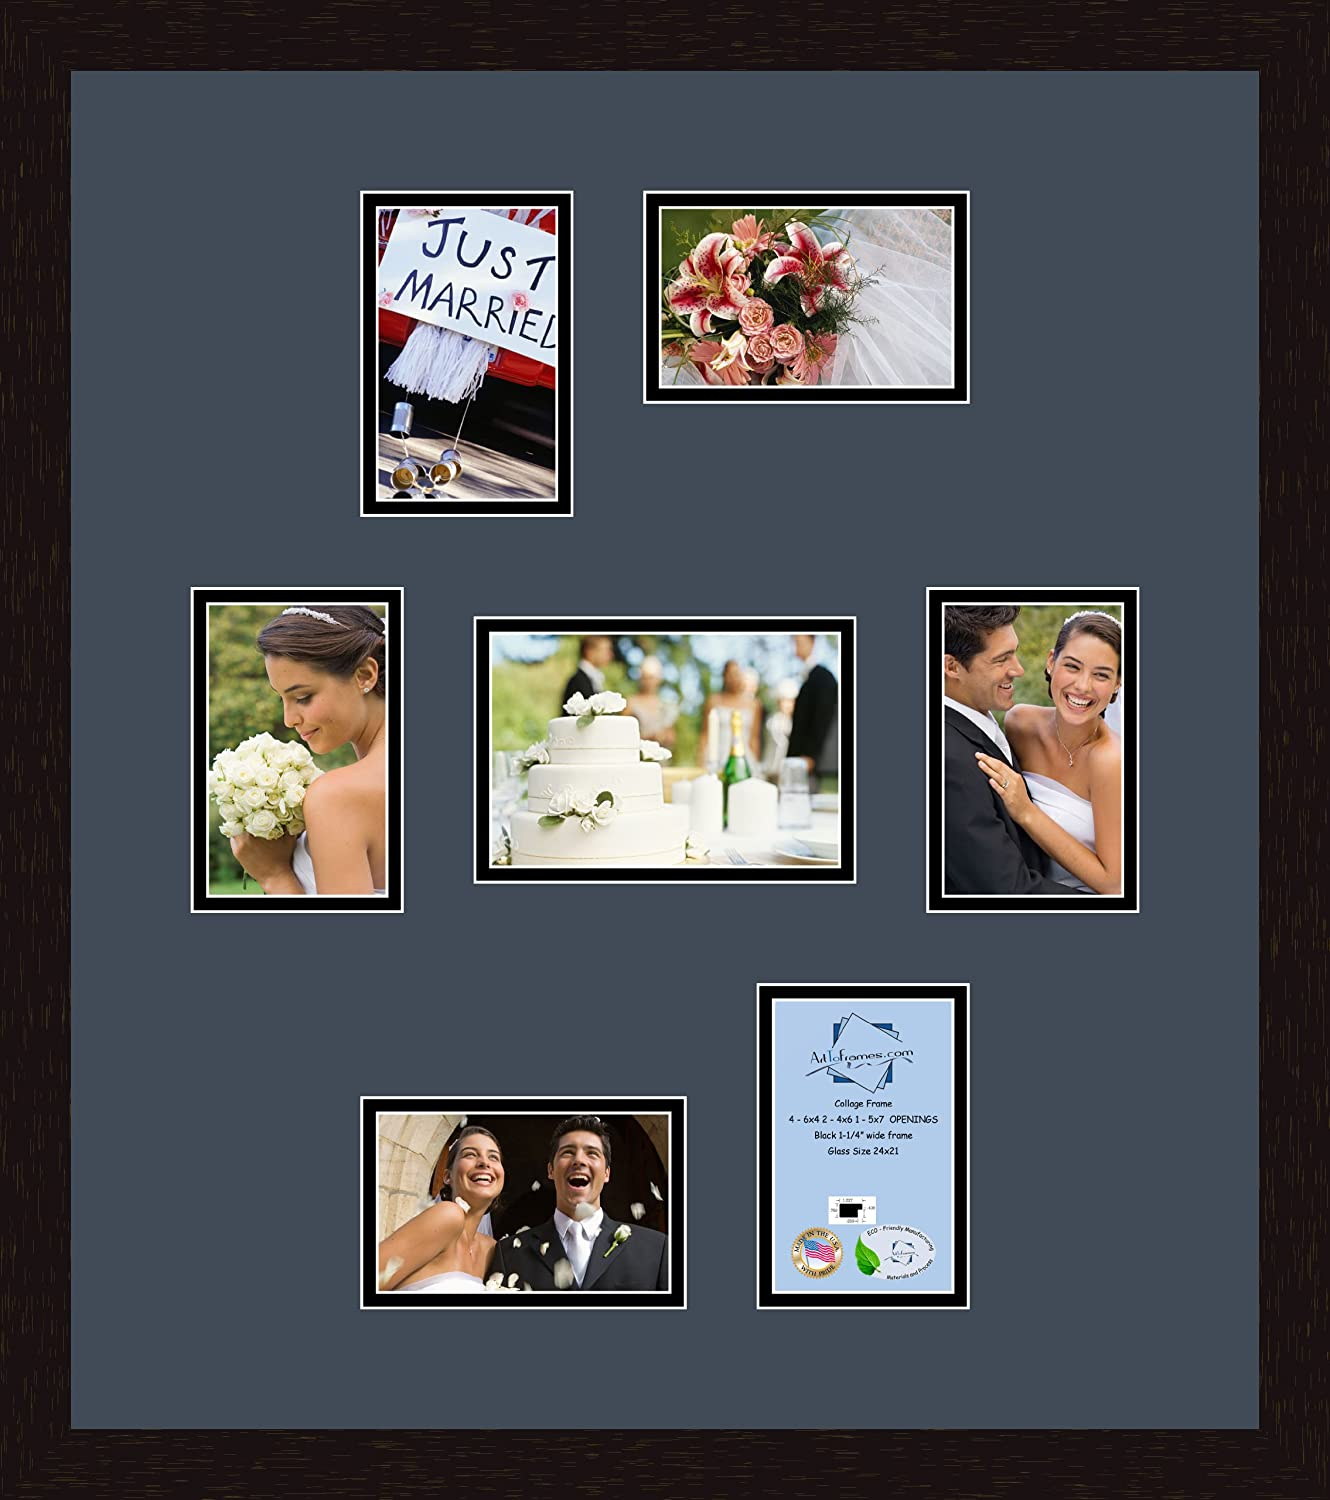 Art to Frames Double-Multimat-338-766//89-FRBW26061 Collage Frame Photo Mat Double Mat with 6-4x6 and 1-5x7 Openings and Espresso Frame